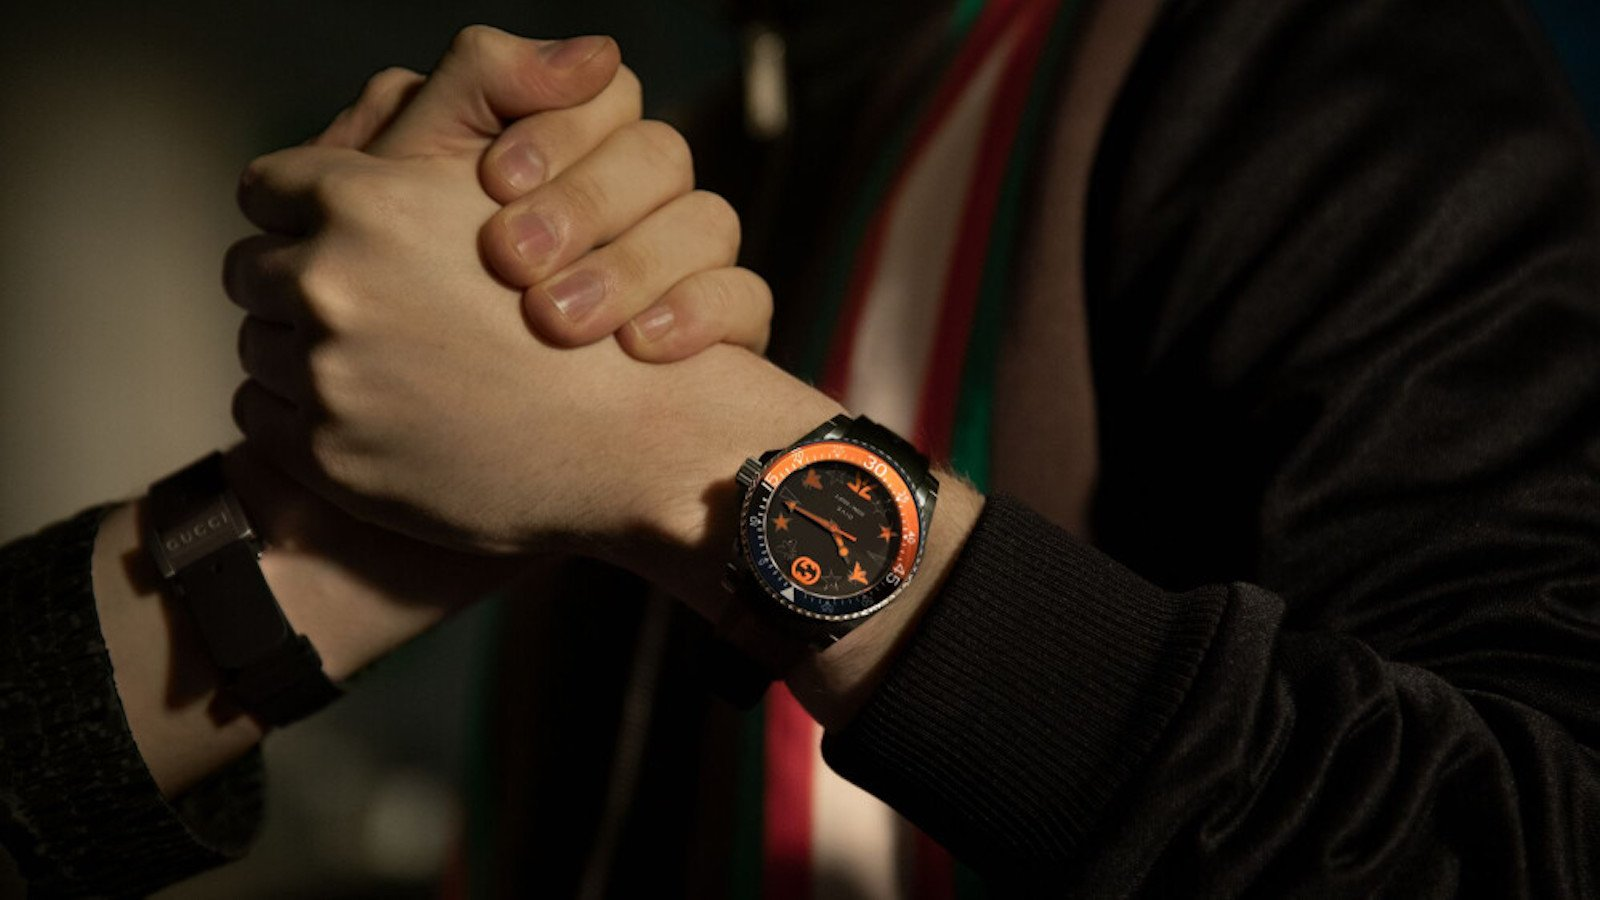 Fnatic x Gucci Dive Limited Edition Watch